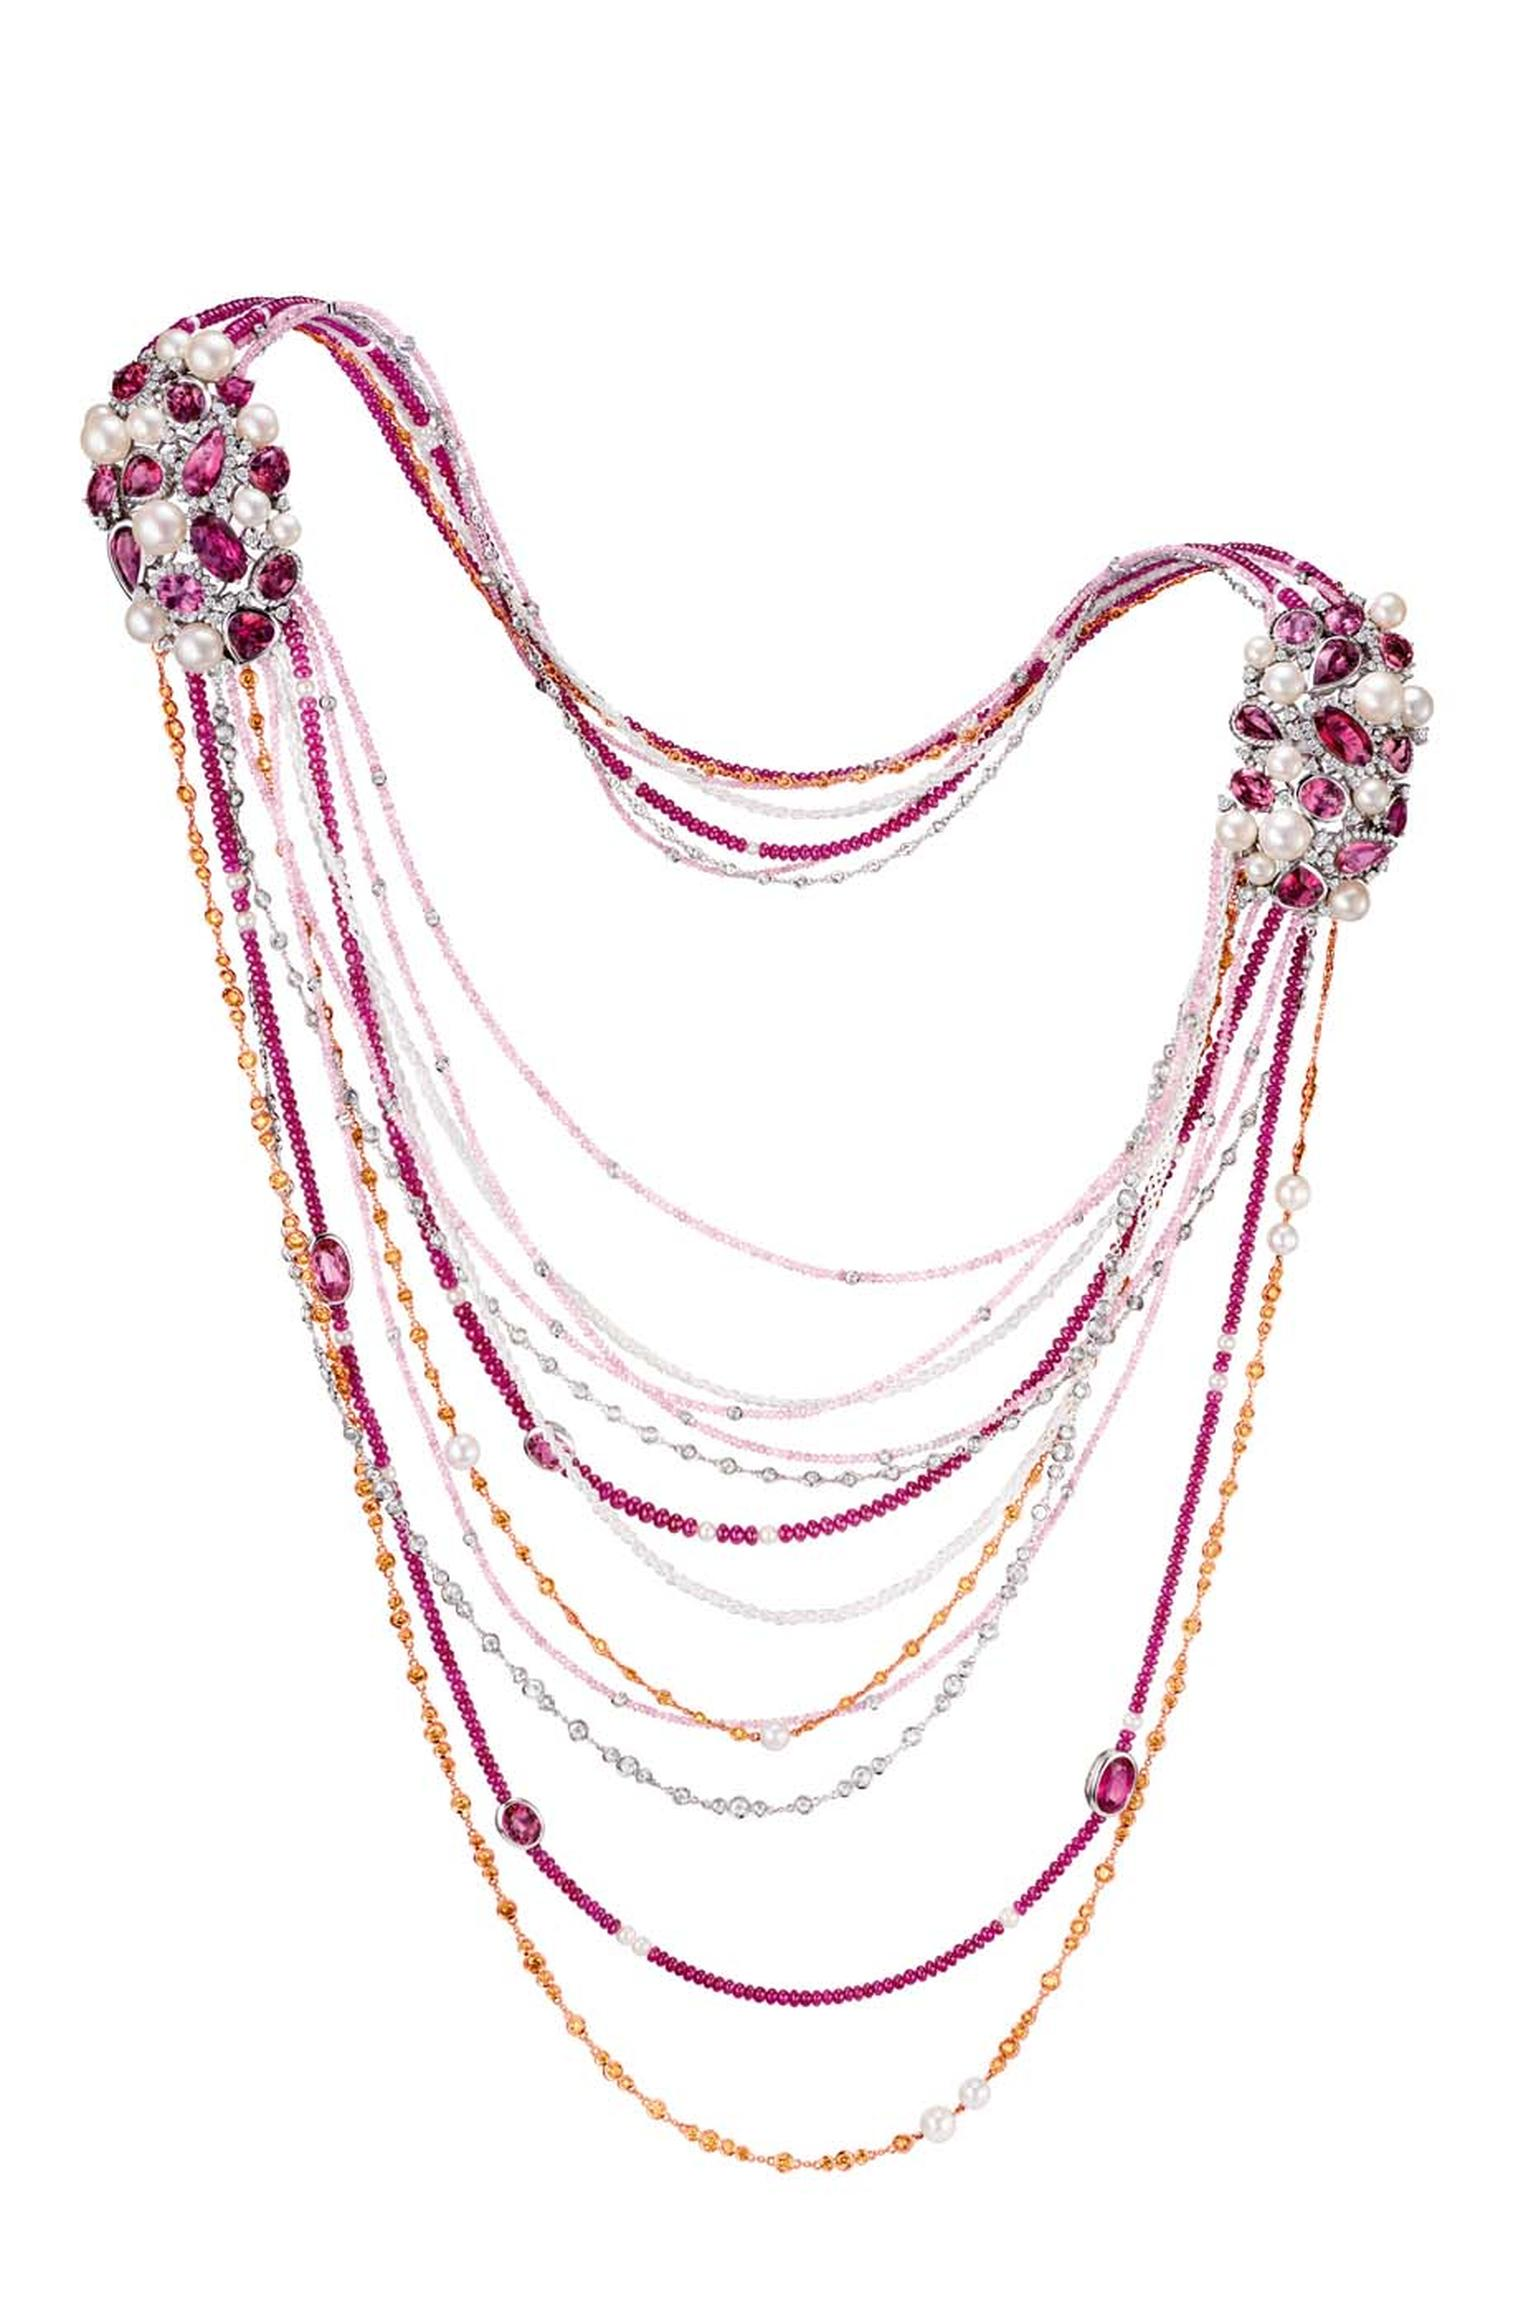 Chow Tai Fook Reflections of Siem Zephyr necklace, inspired by the Cambodian sunset, with pink diamonds, pearls and purple and red tourmalines.